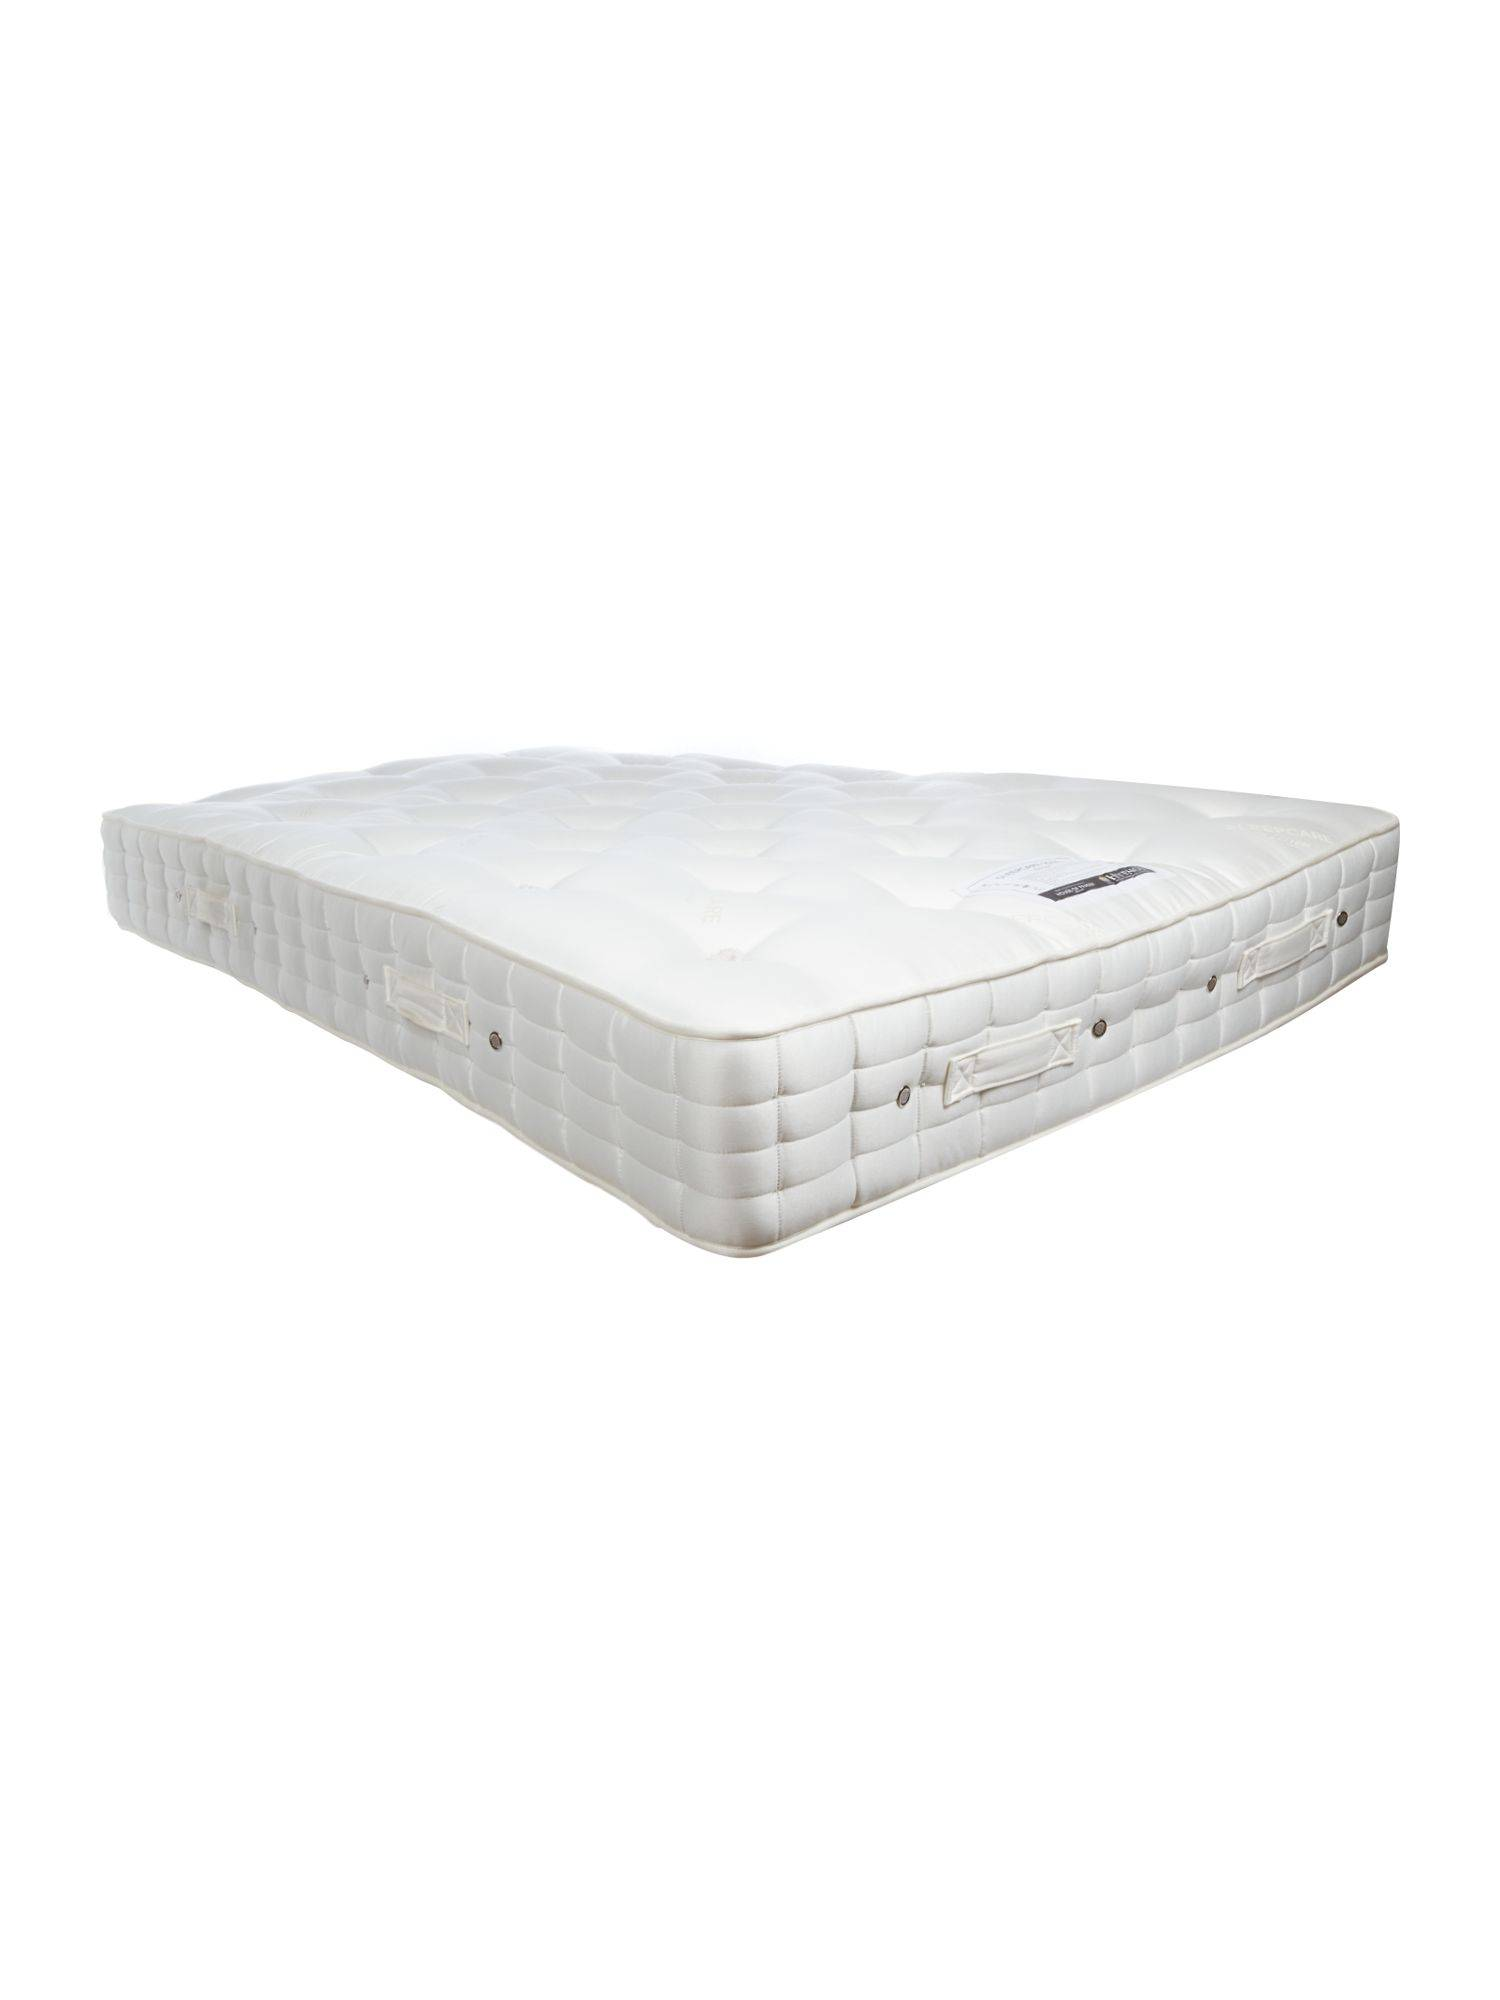 LINEA Home by Hypnos Sleepcare 2000 double mattress